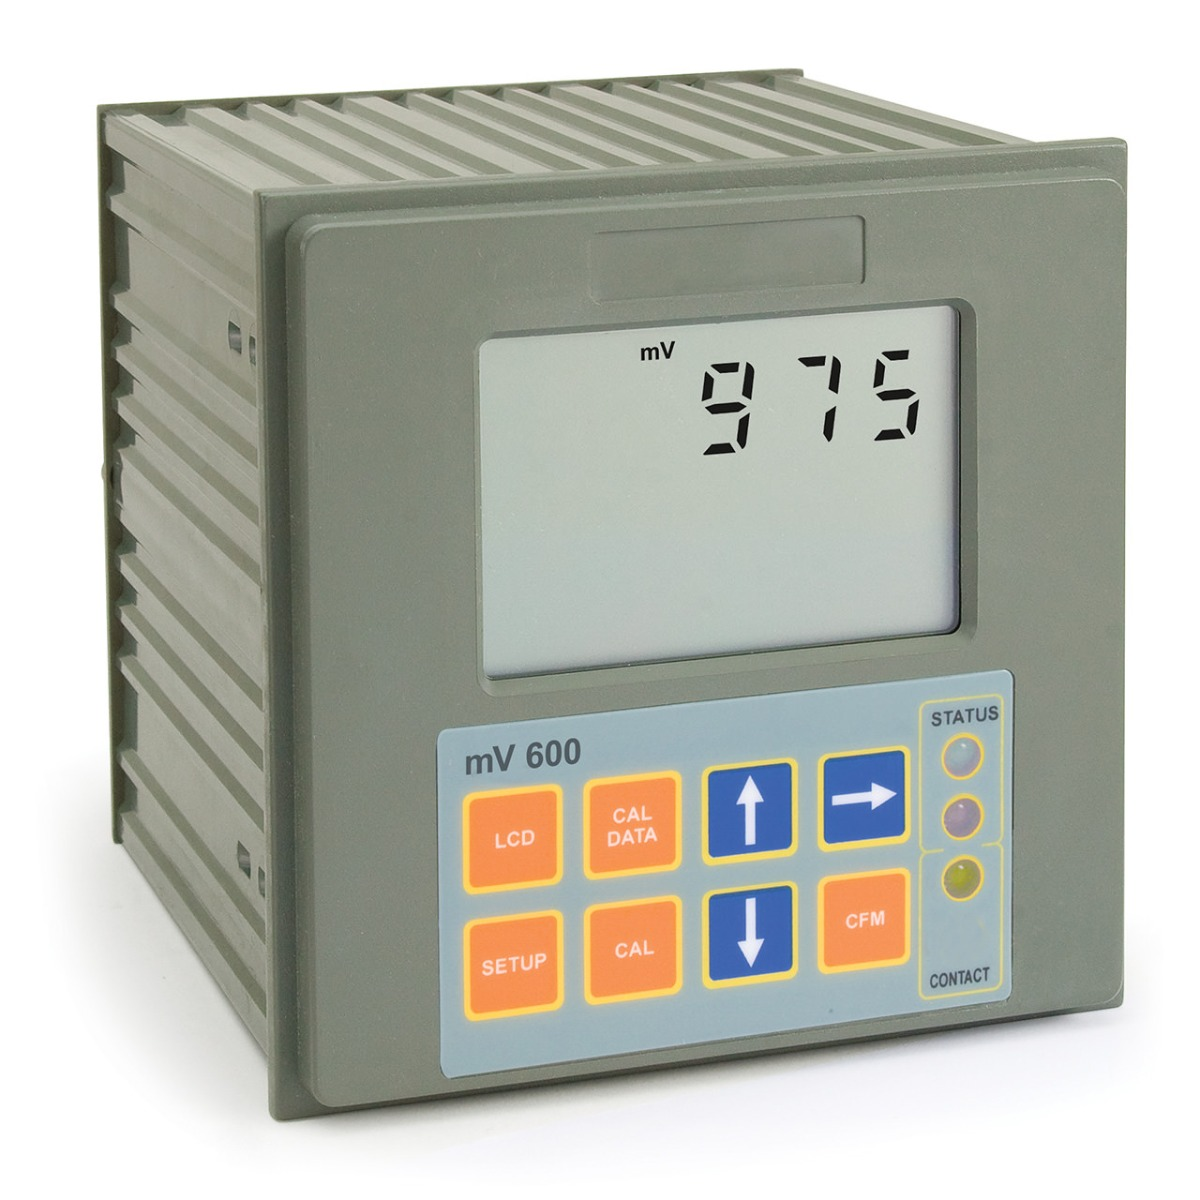 Panel-mounted ORP Digital Controller - mV600